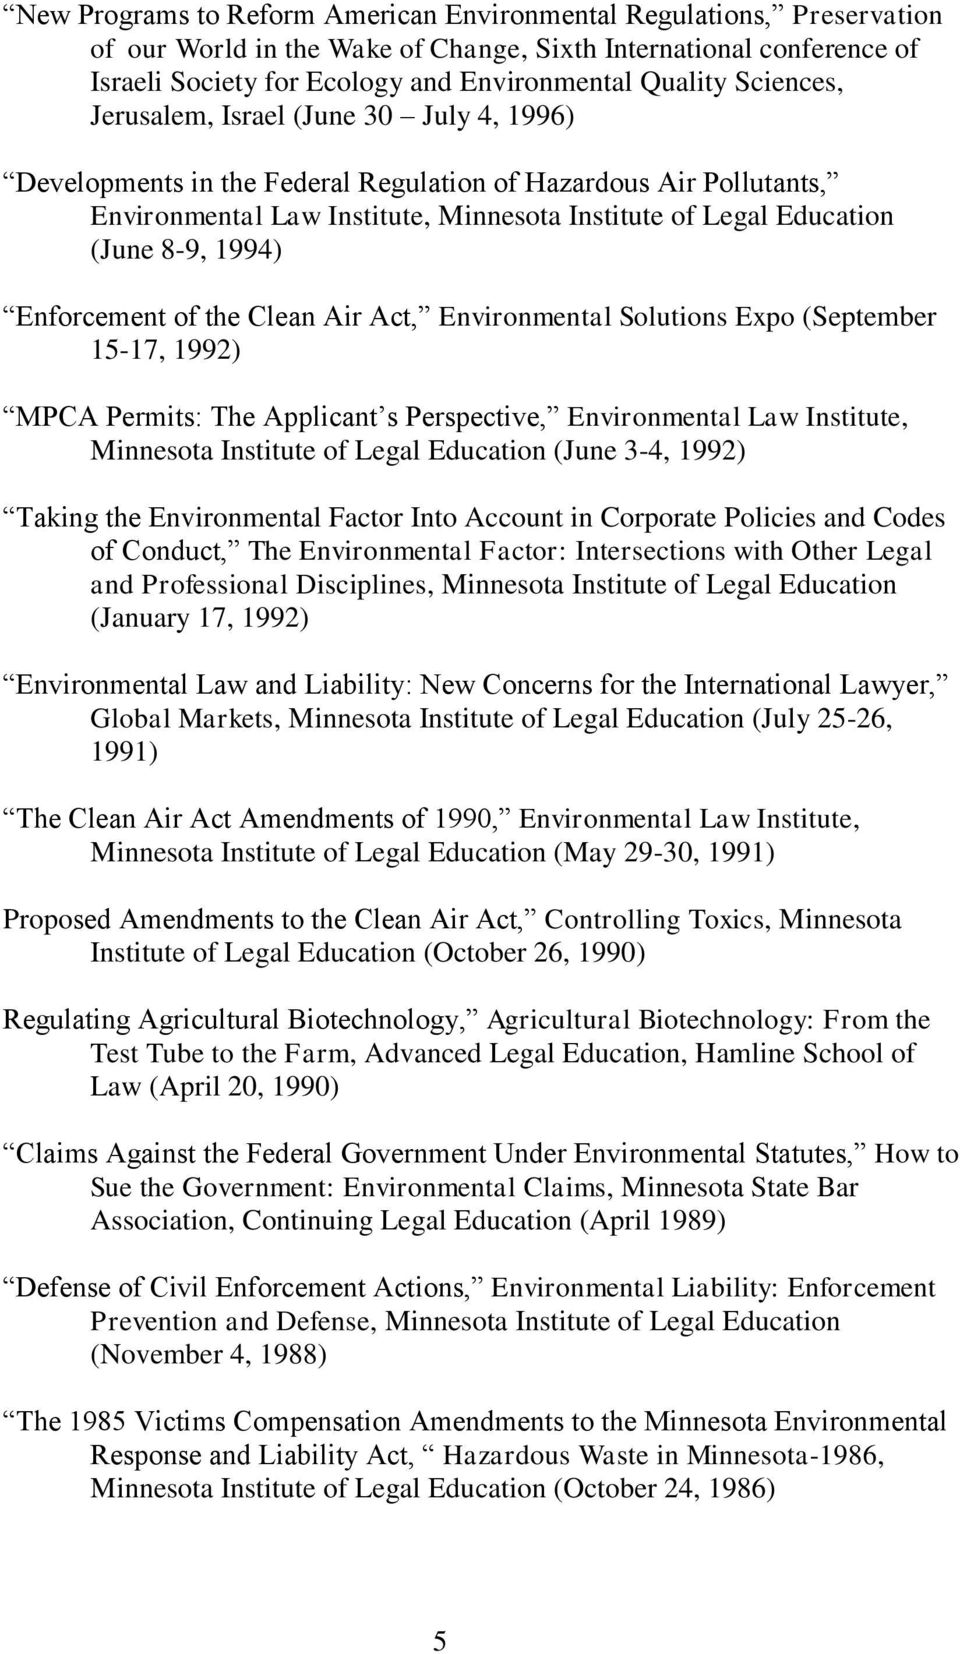 1994) Enforcement of the Clean Air Act, Environmental Solutions Expo (September 15-17, 1992) MPCA Permits: The Applicant s Perspective, Environmental Law Institute, Minnesota Institute of Legal